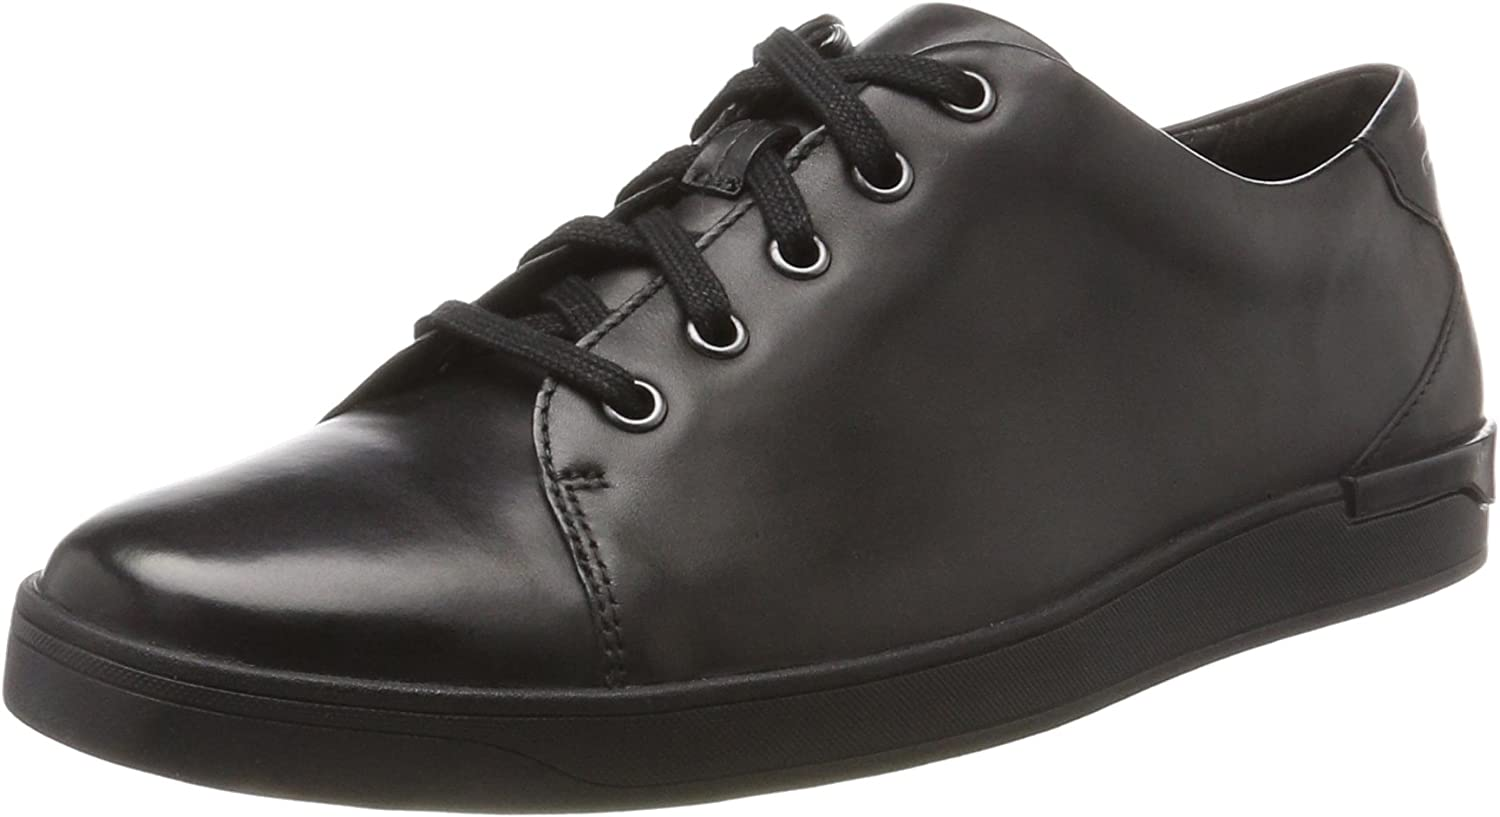 Clarks Stanway Lace - Black Leather Mens shoes